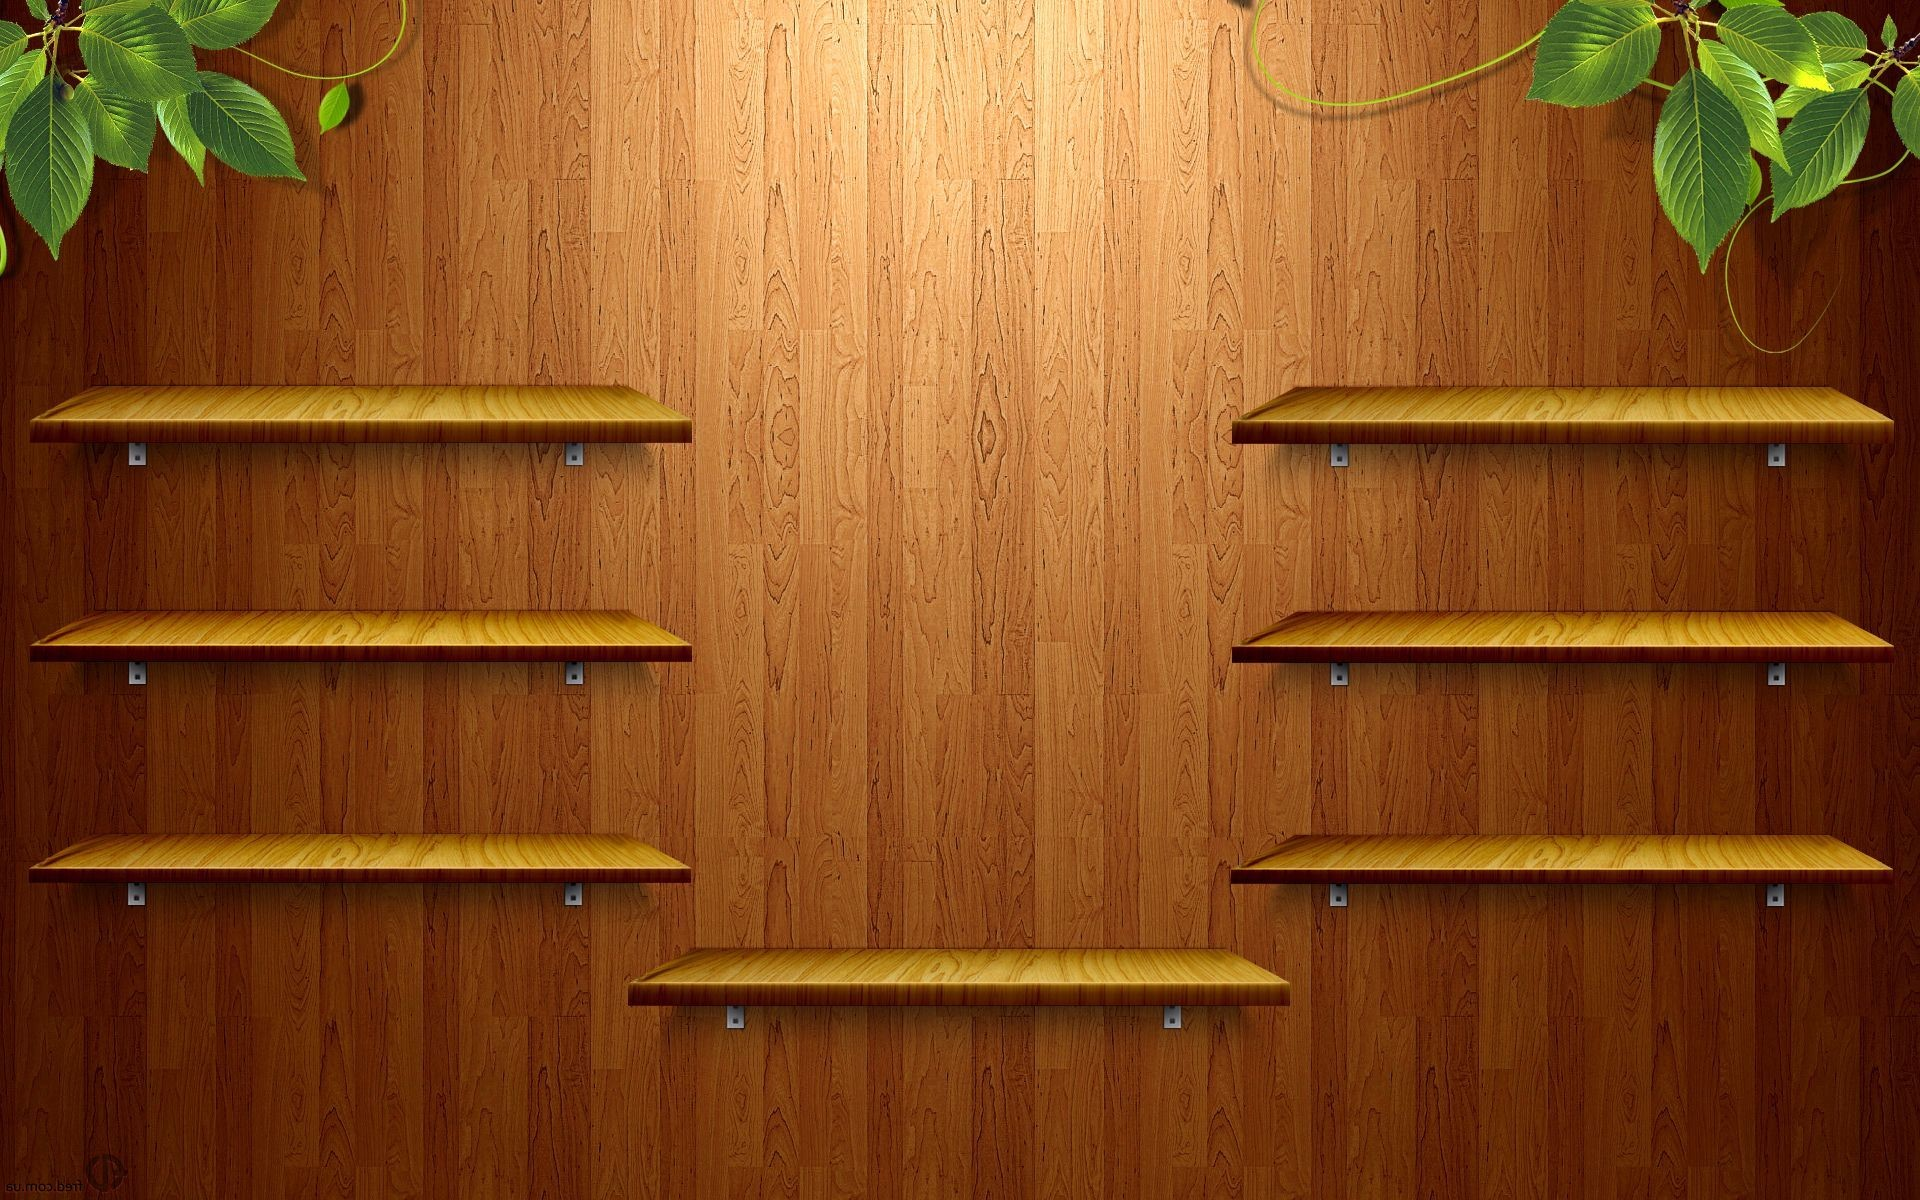 1920x1200 ... Wooden shelves